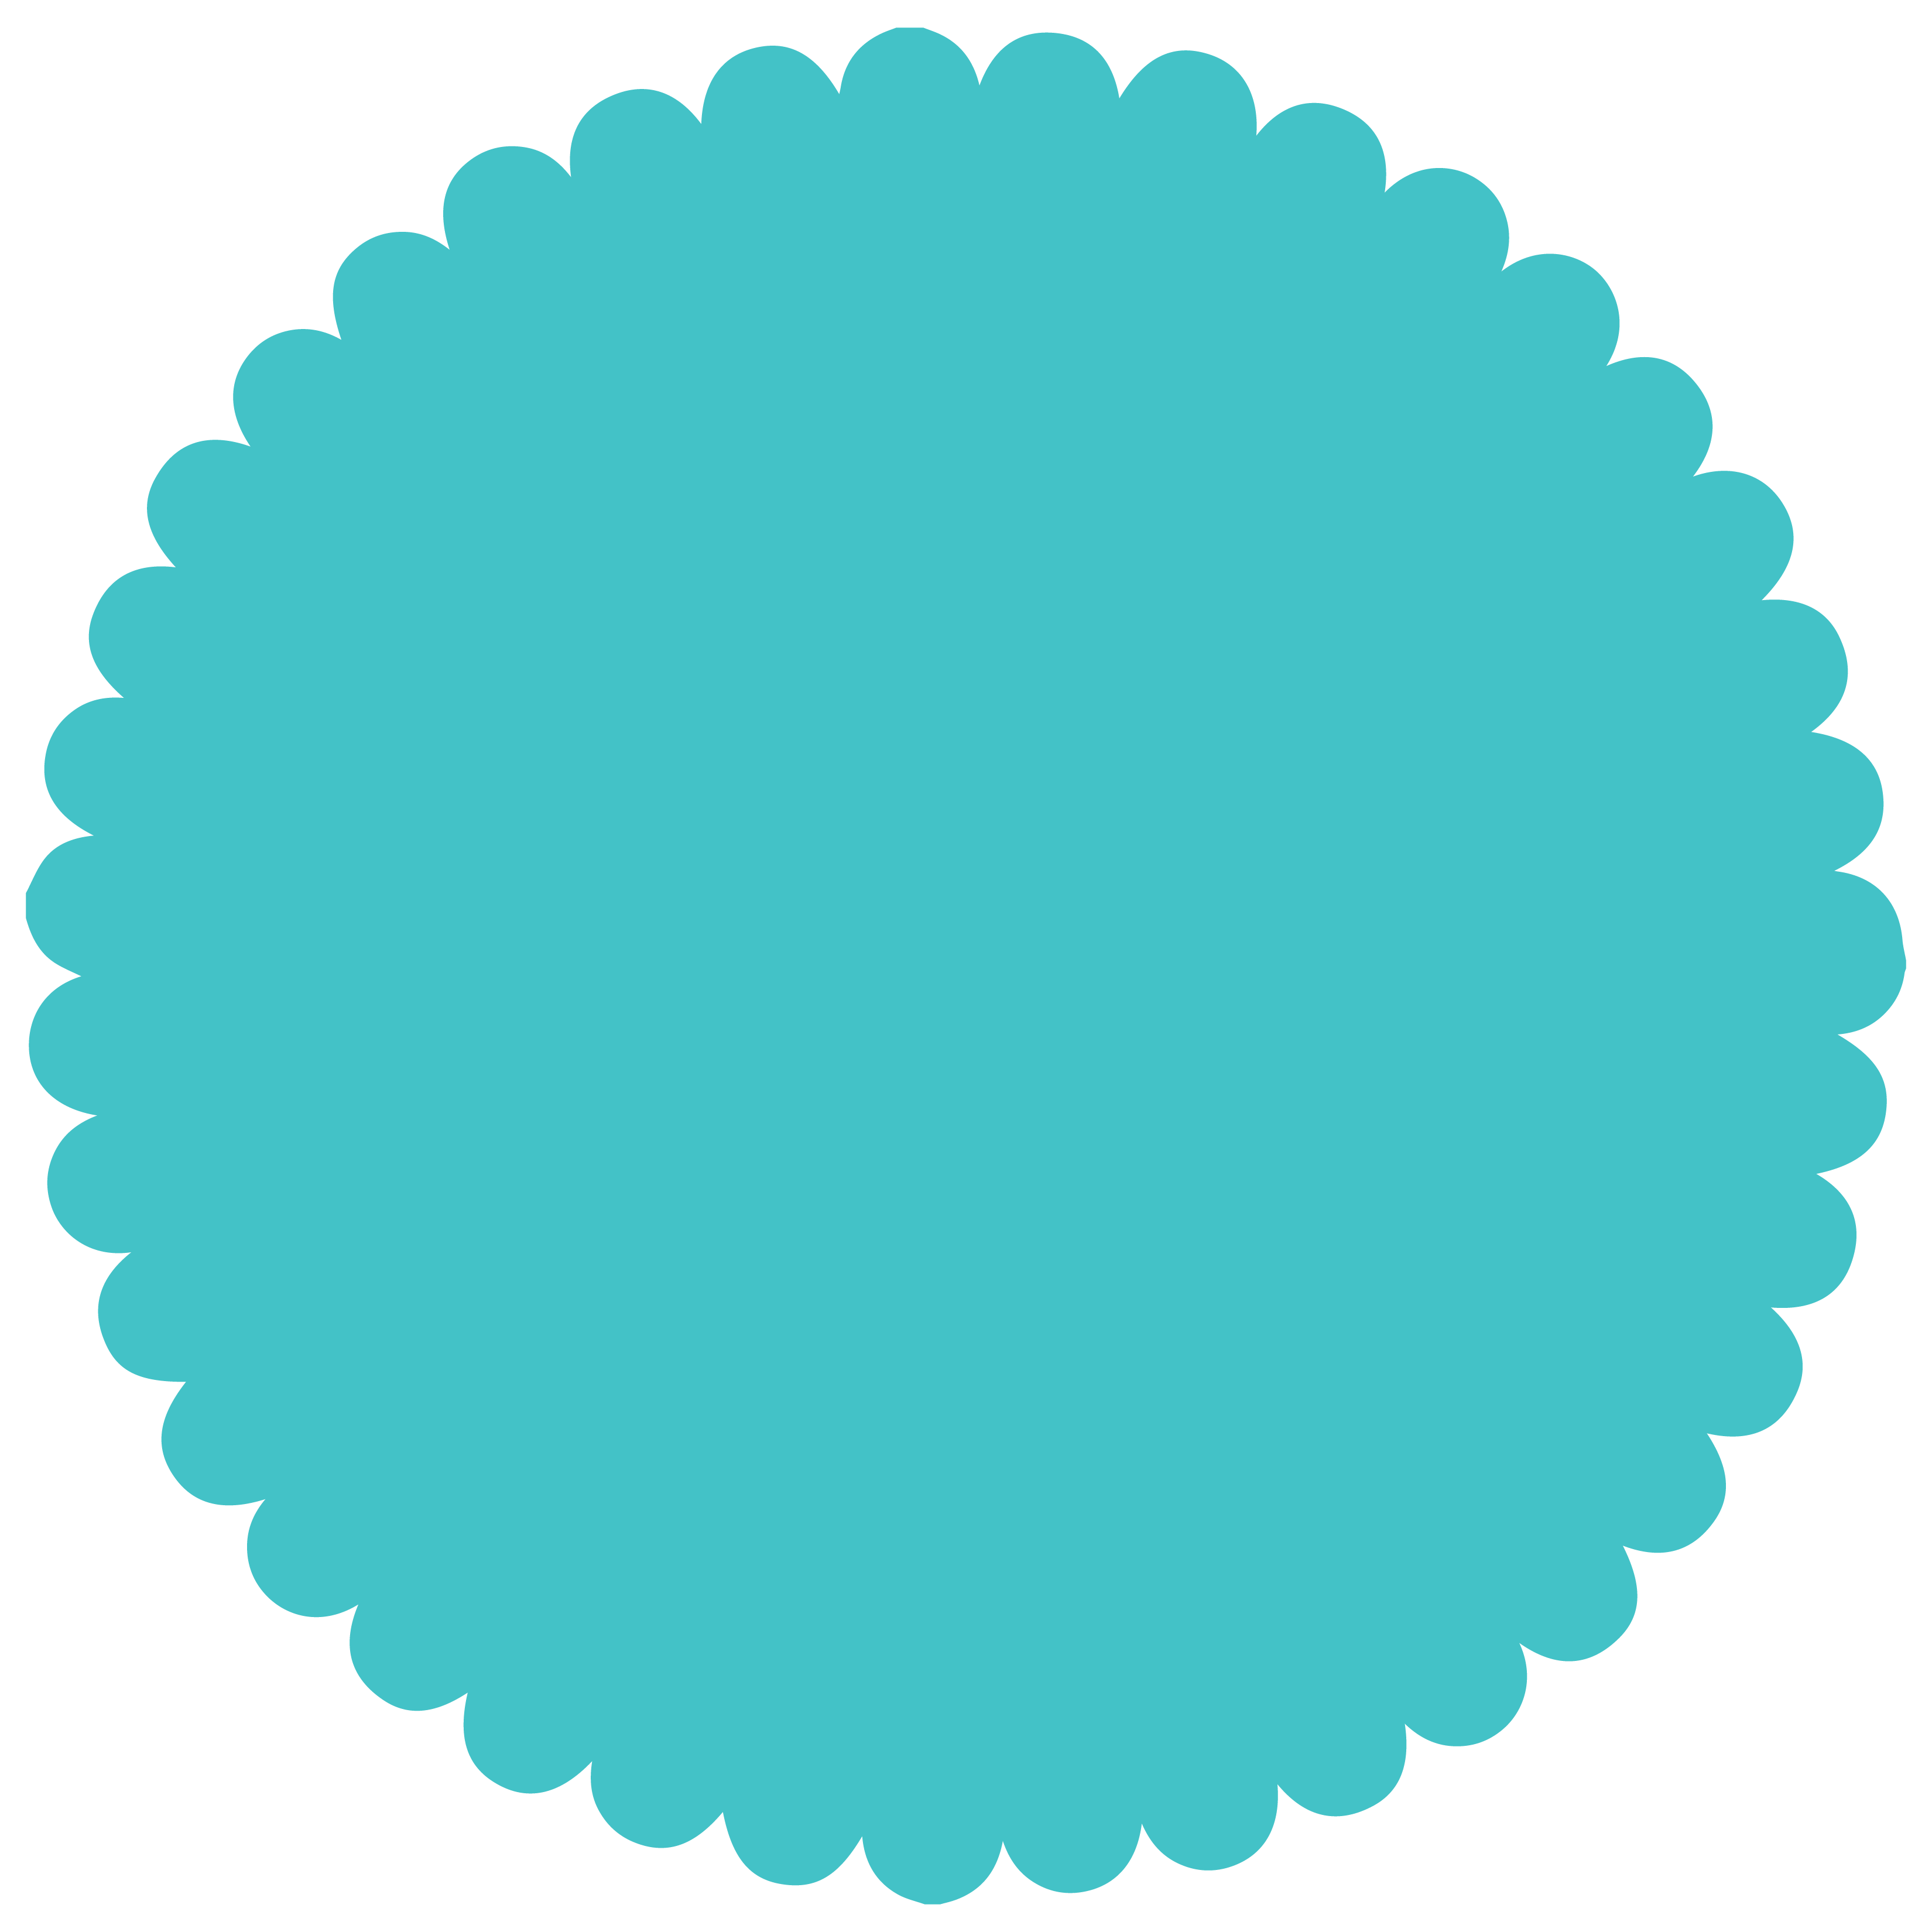 Scalloped Circle Transparent Related Keywords